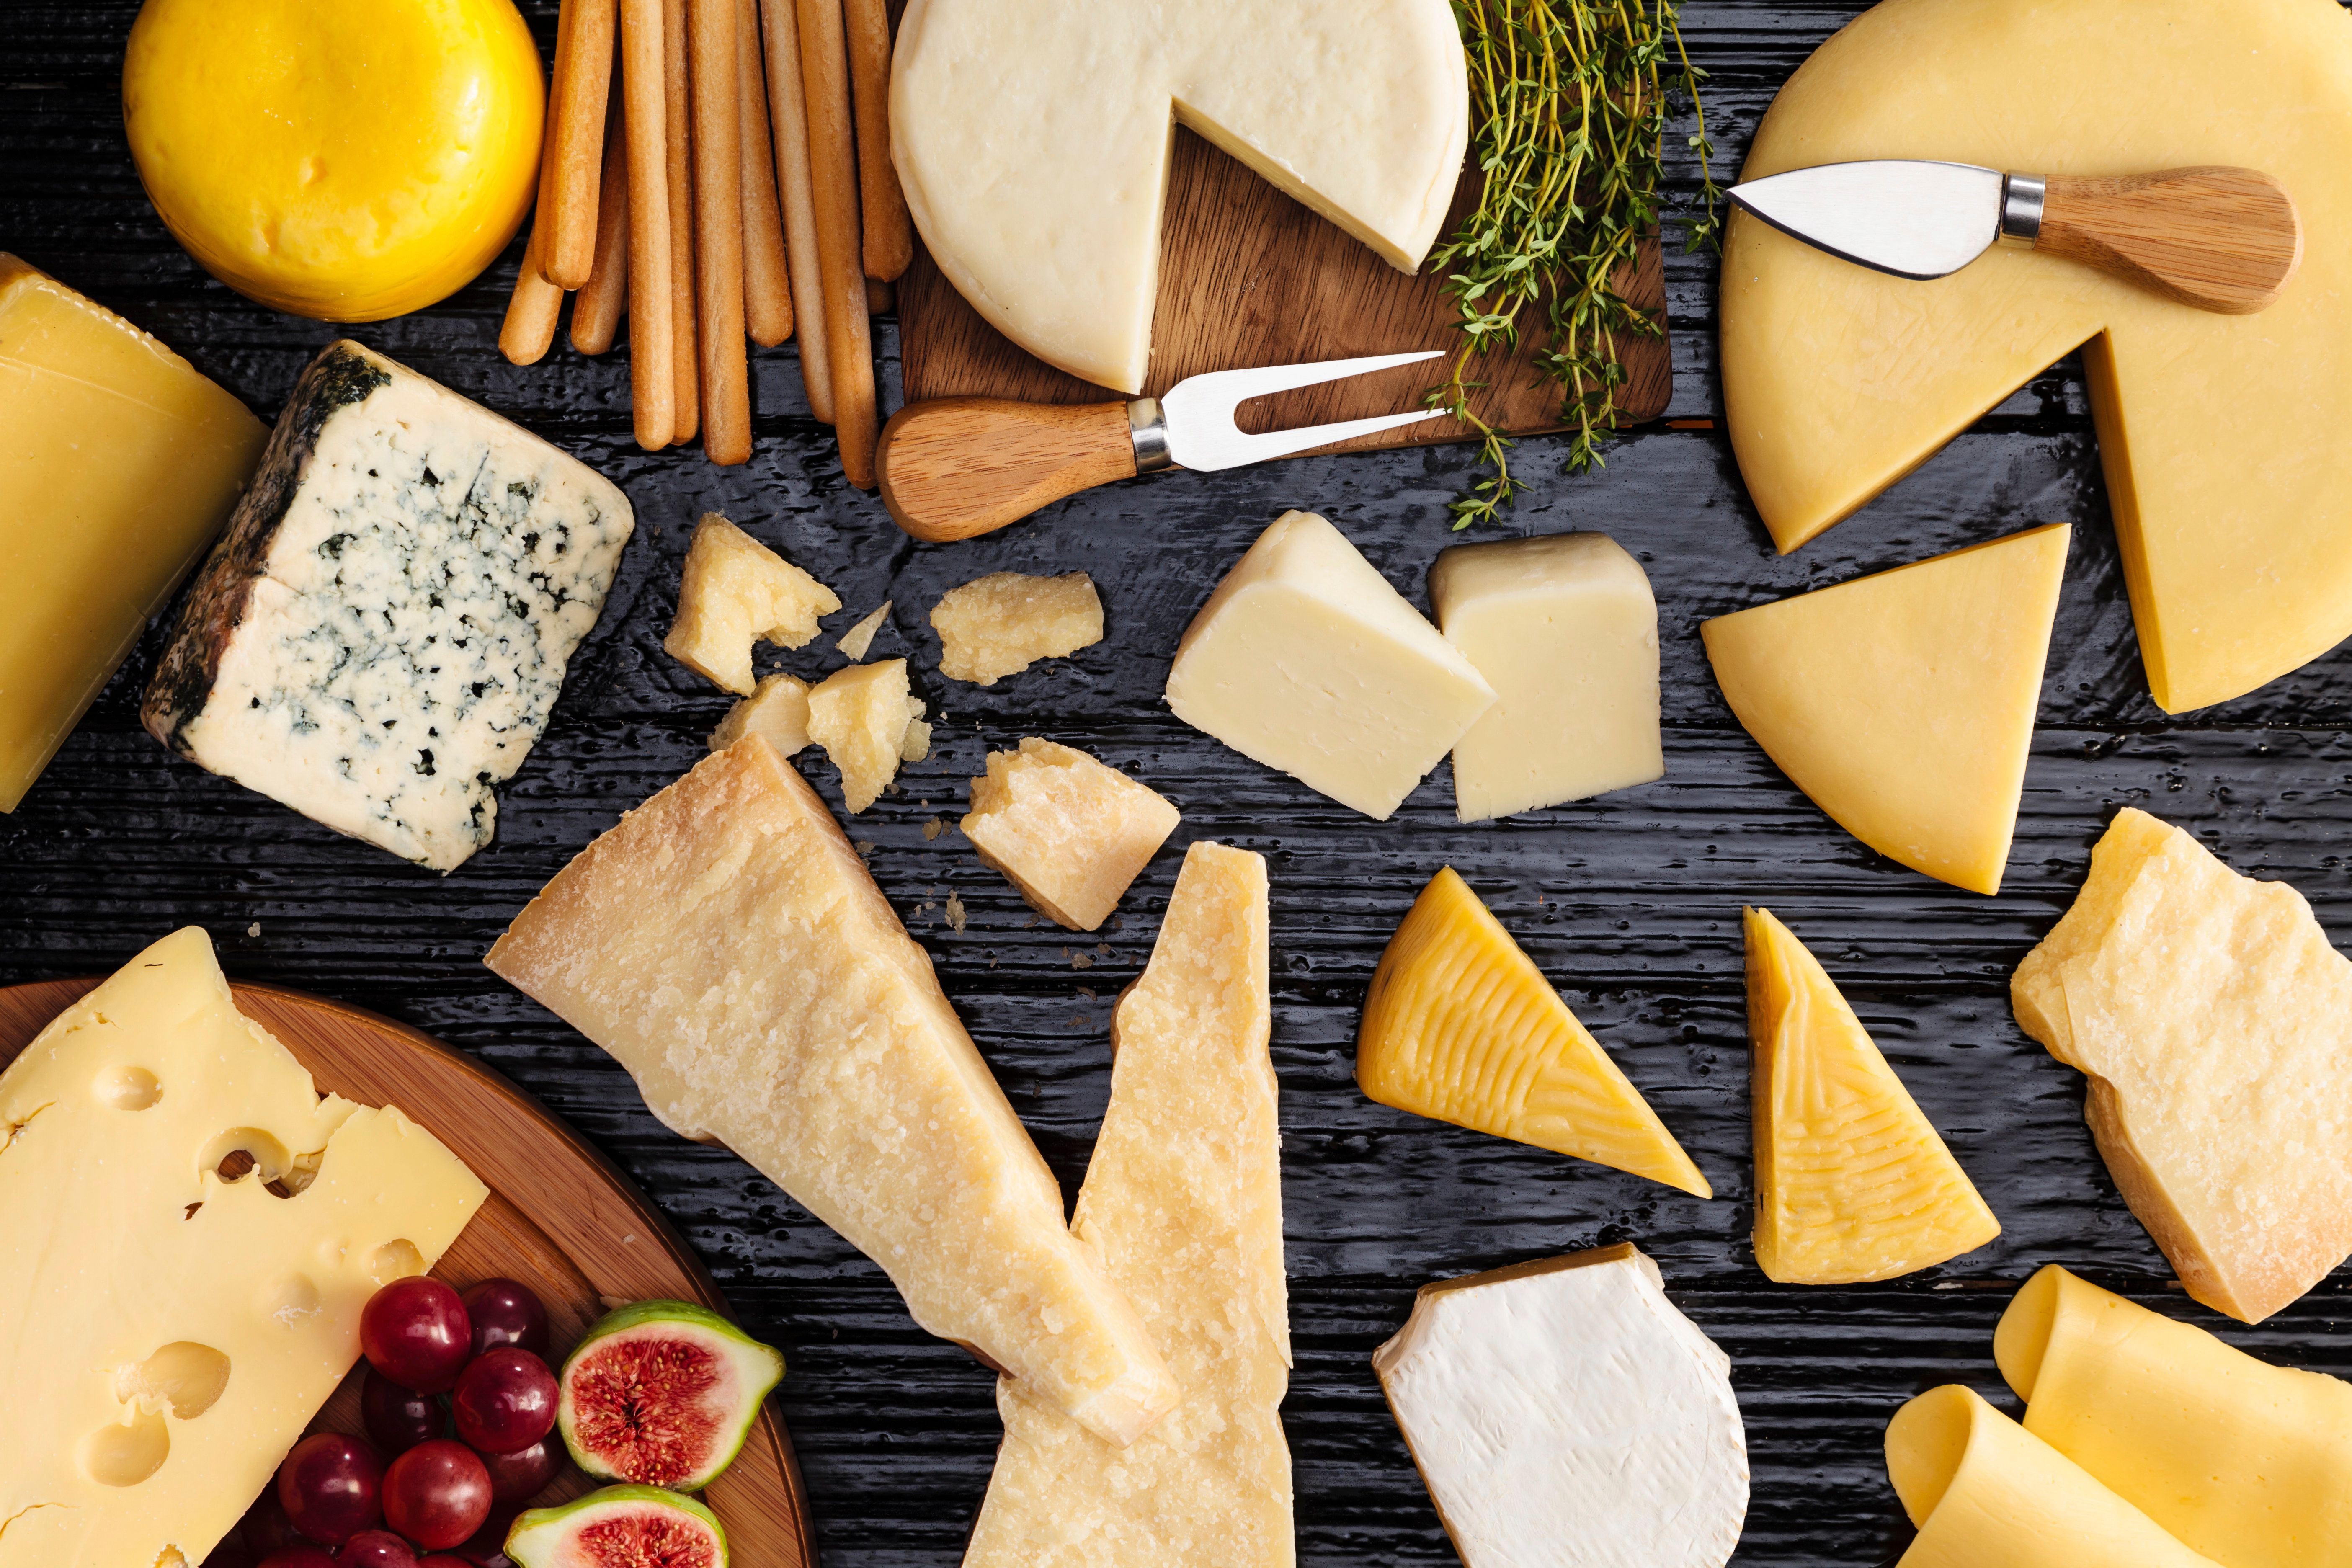 Consuming Lots Of Cheese Makes 'No Difference To Cholesterol